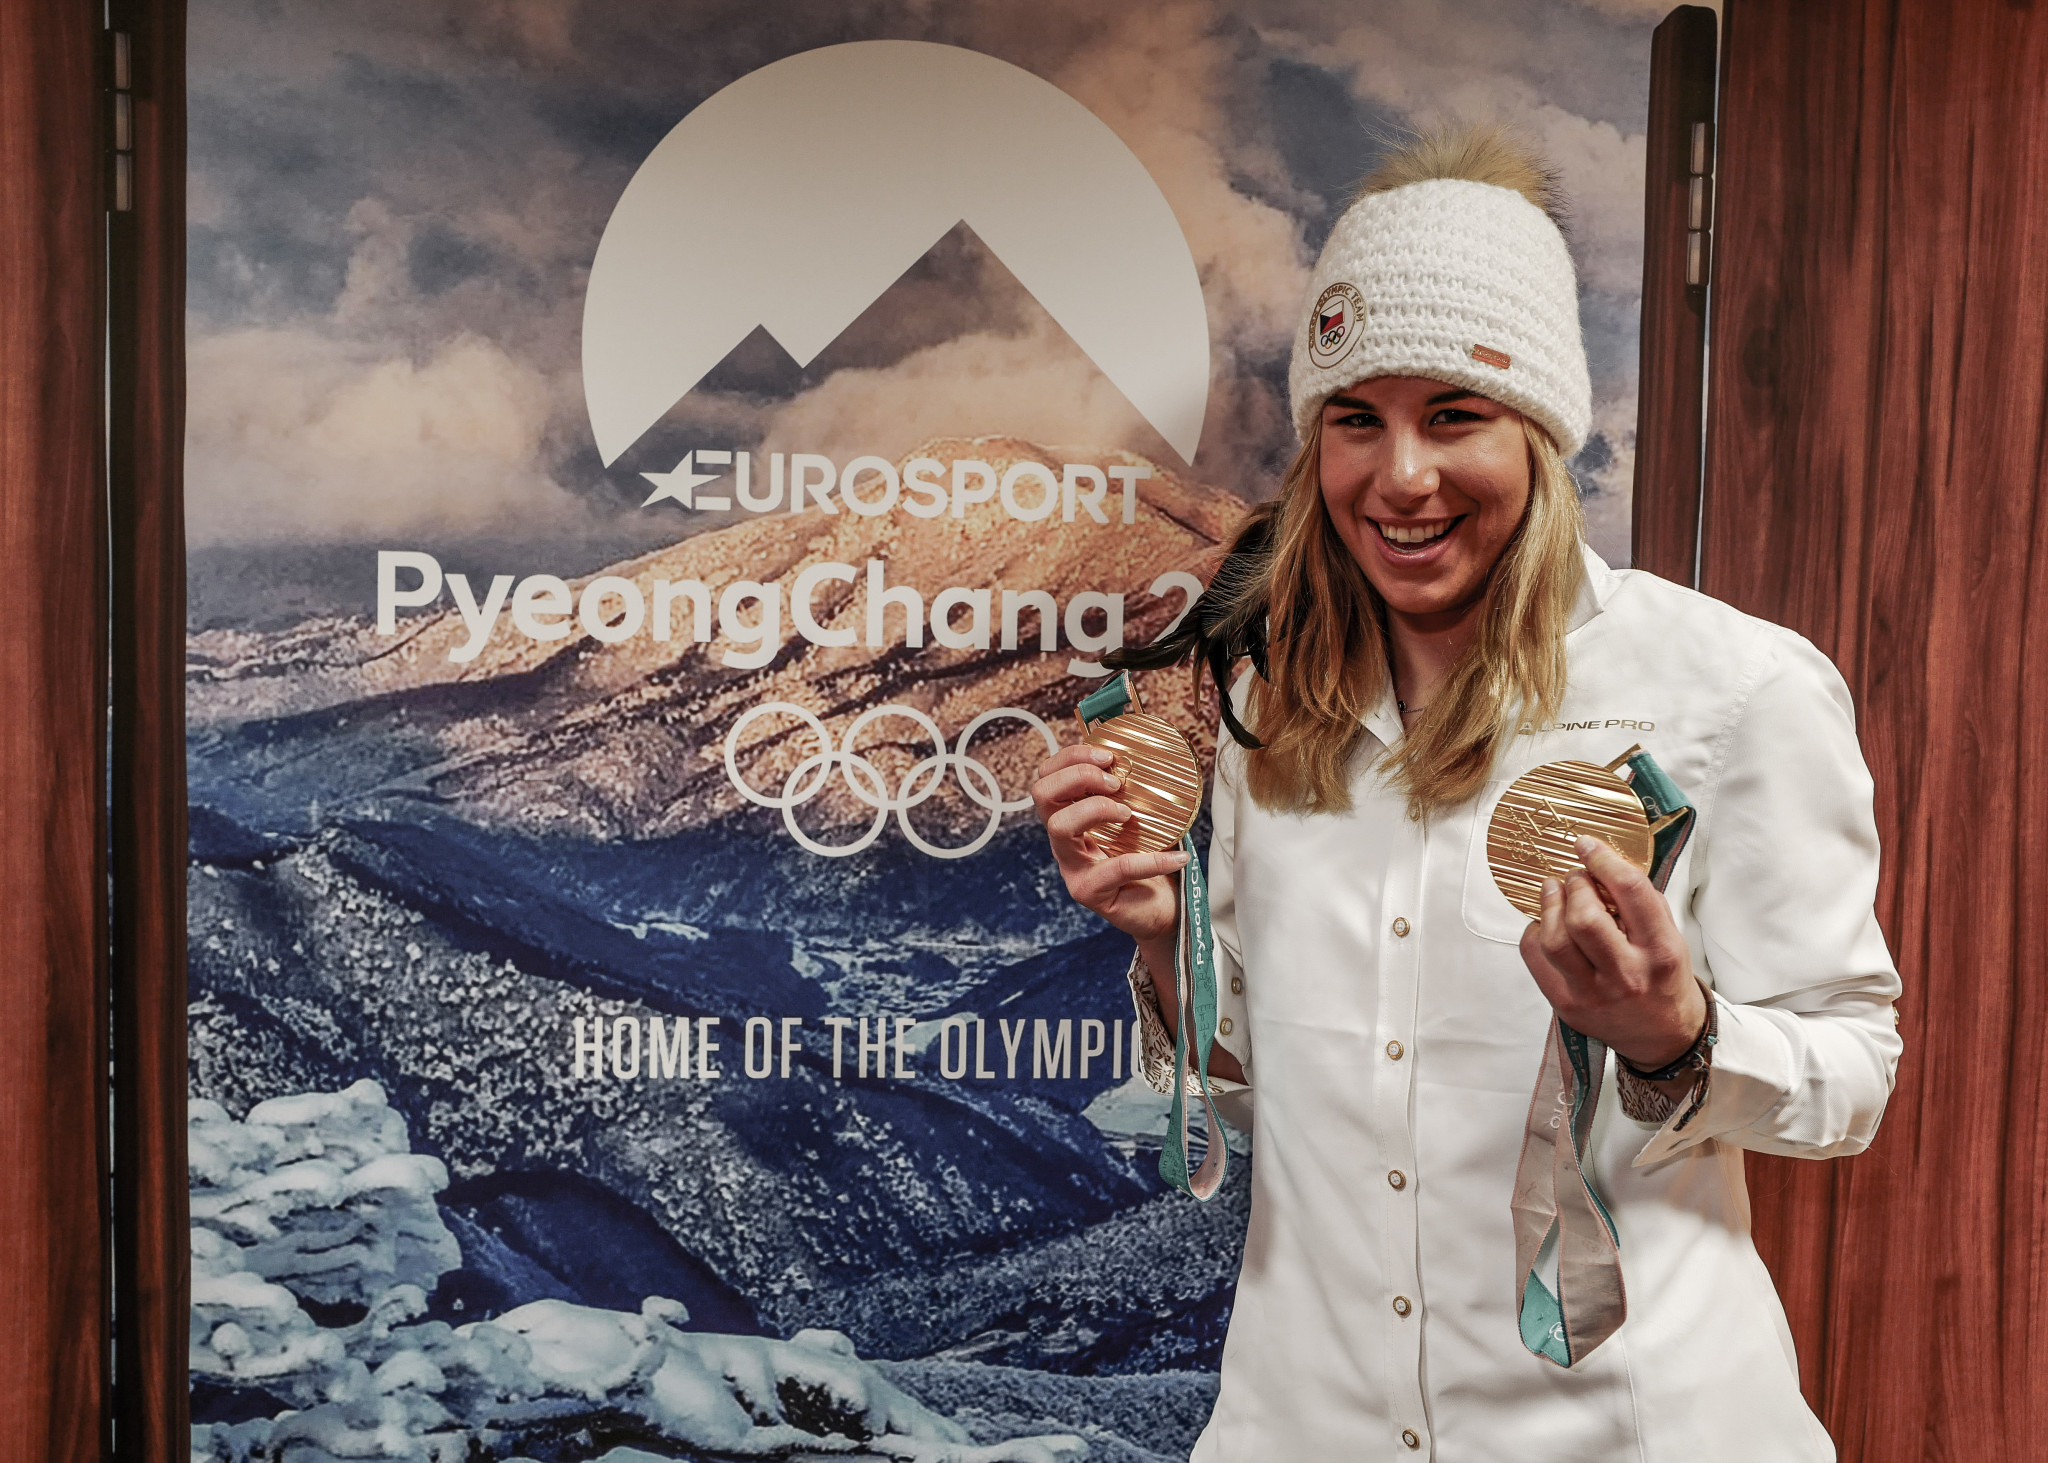 Eurosport welcomed a host of Olympic champions to their studios during Pyeongchang 2018, including historic skiing and snowboarding gold medallist Ester Ledecka ©Getty Images/Eurosport